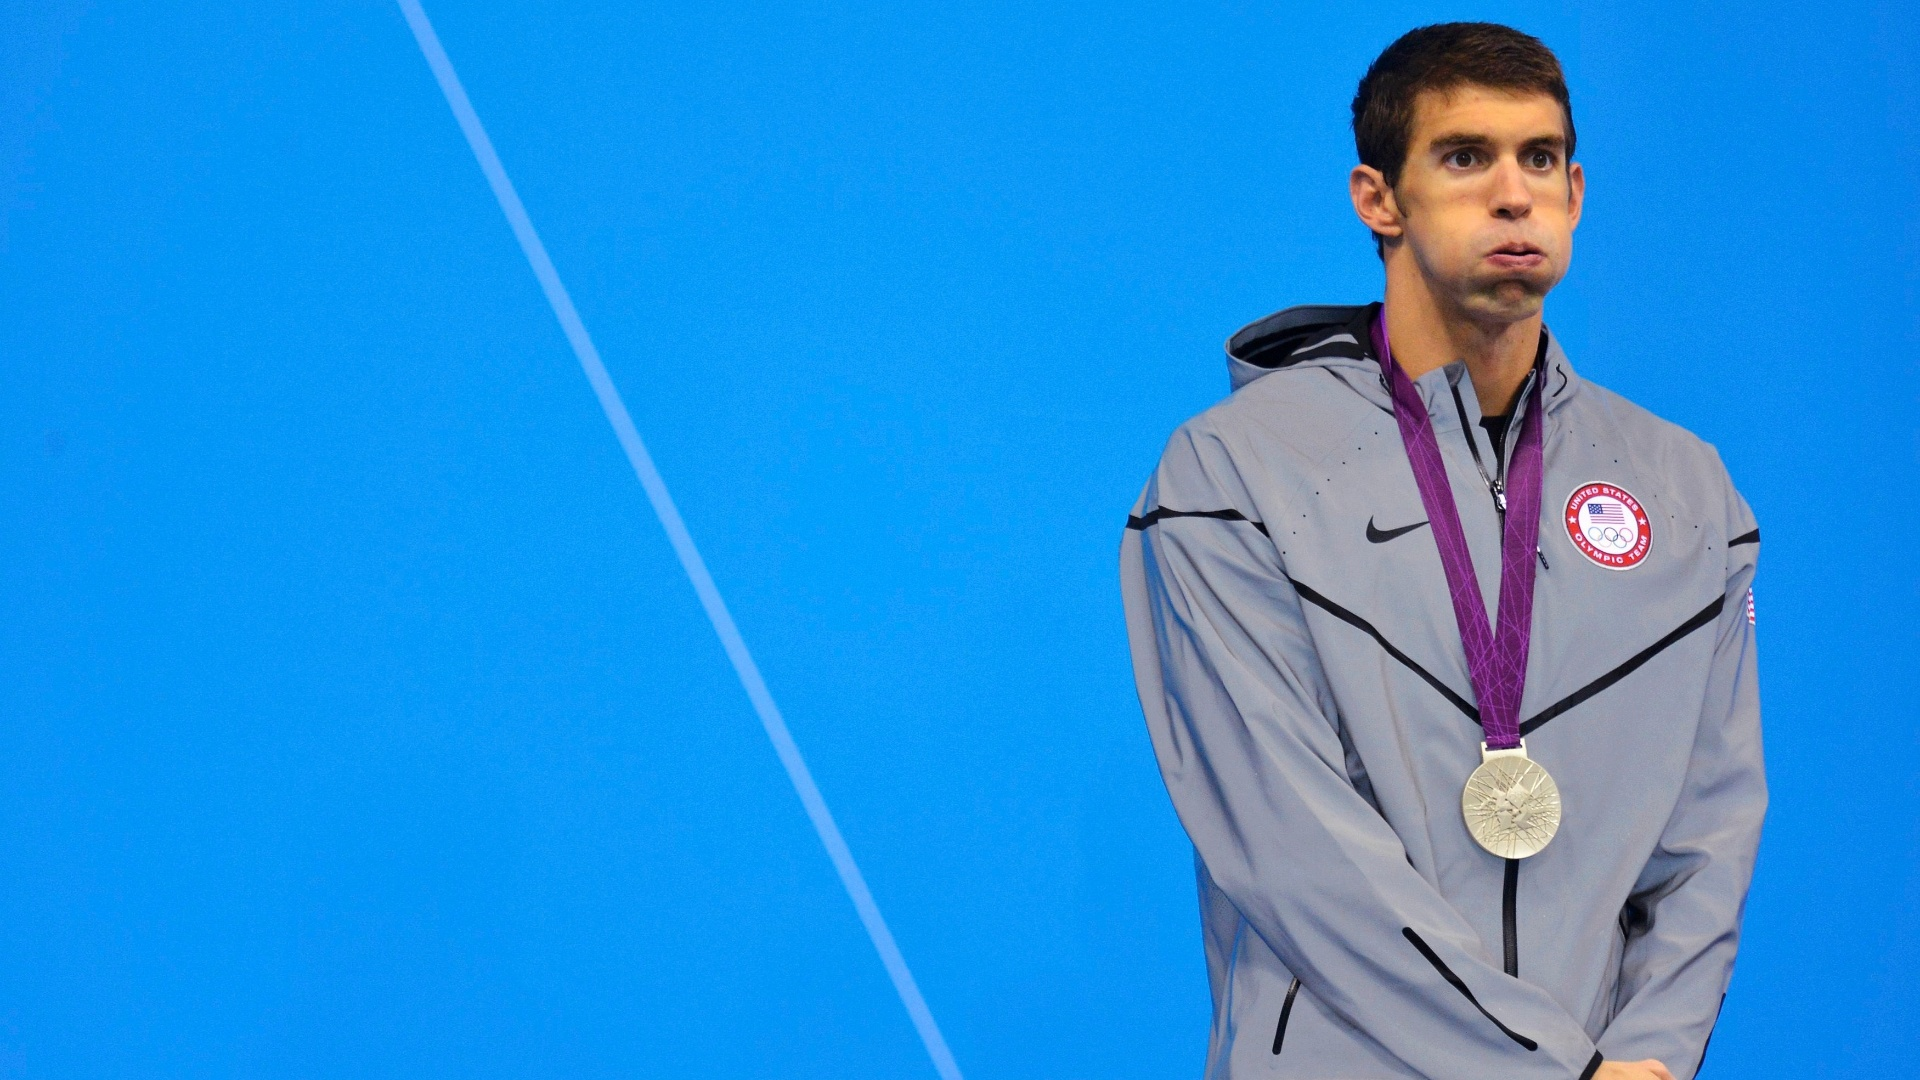 Michael Phelps parece cansado enquanto recebe a medalha de prata na natao